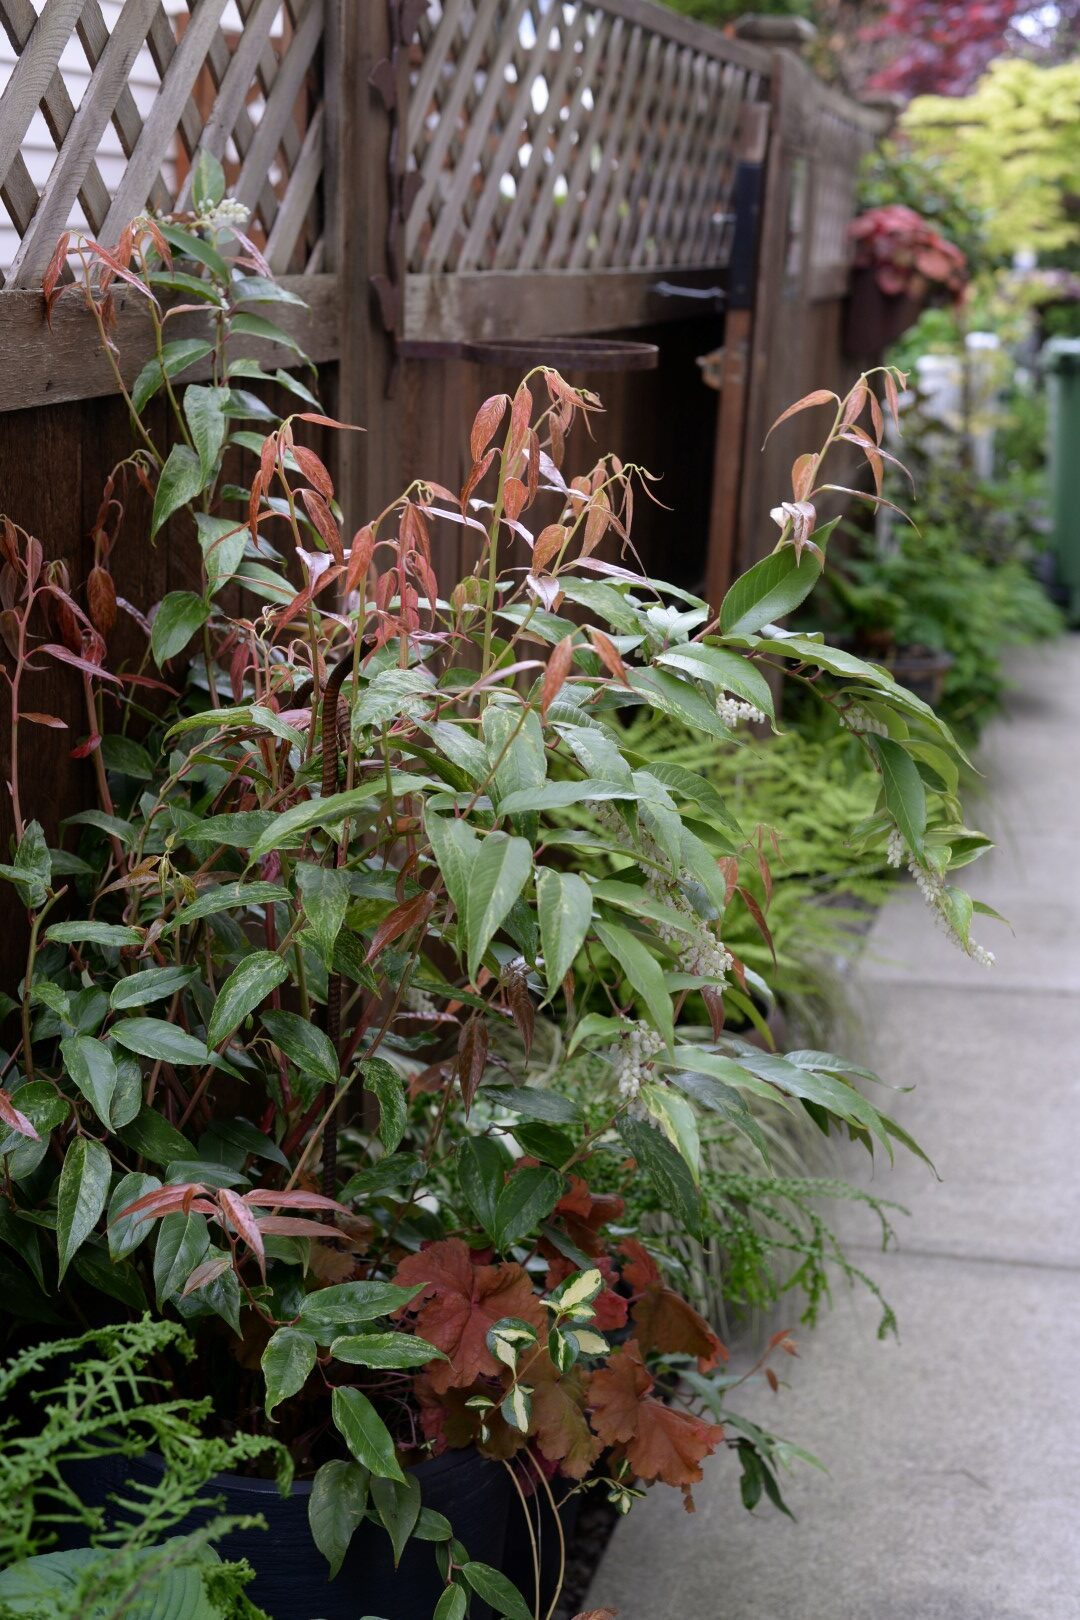 Looking down a narrow space lined with plants in front of a wooden fence